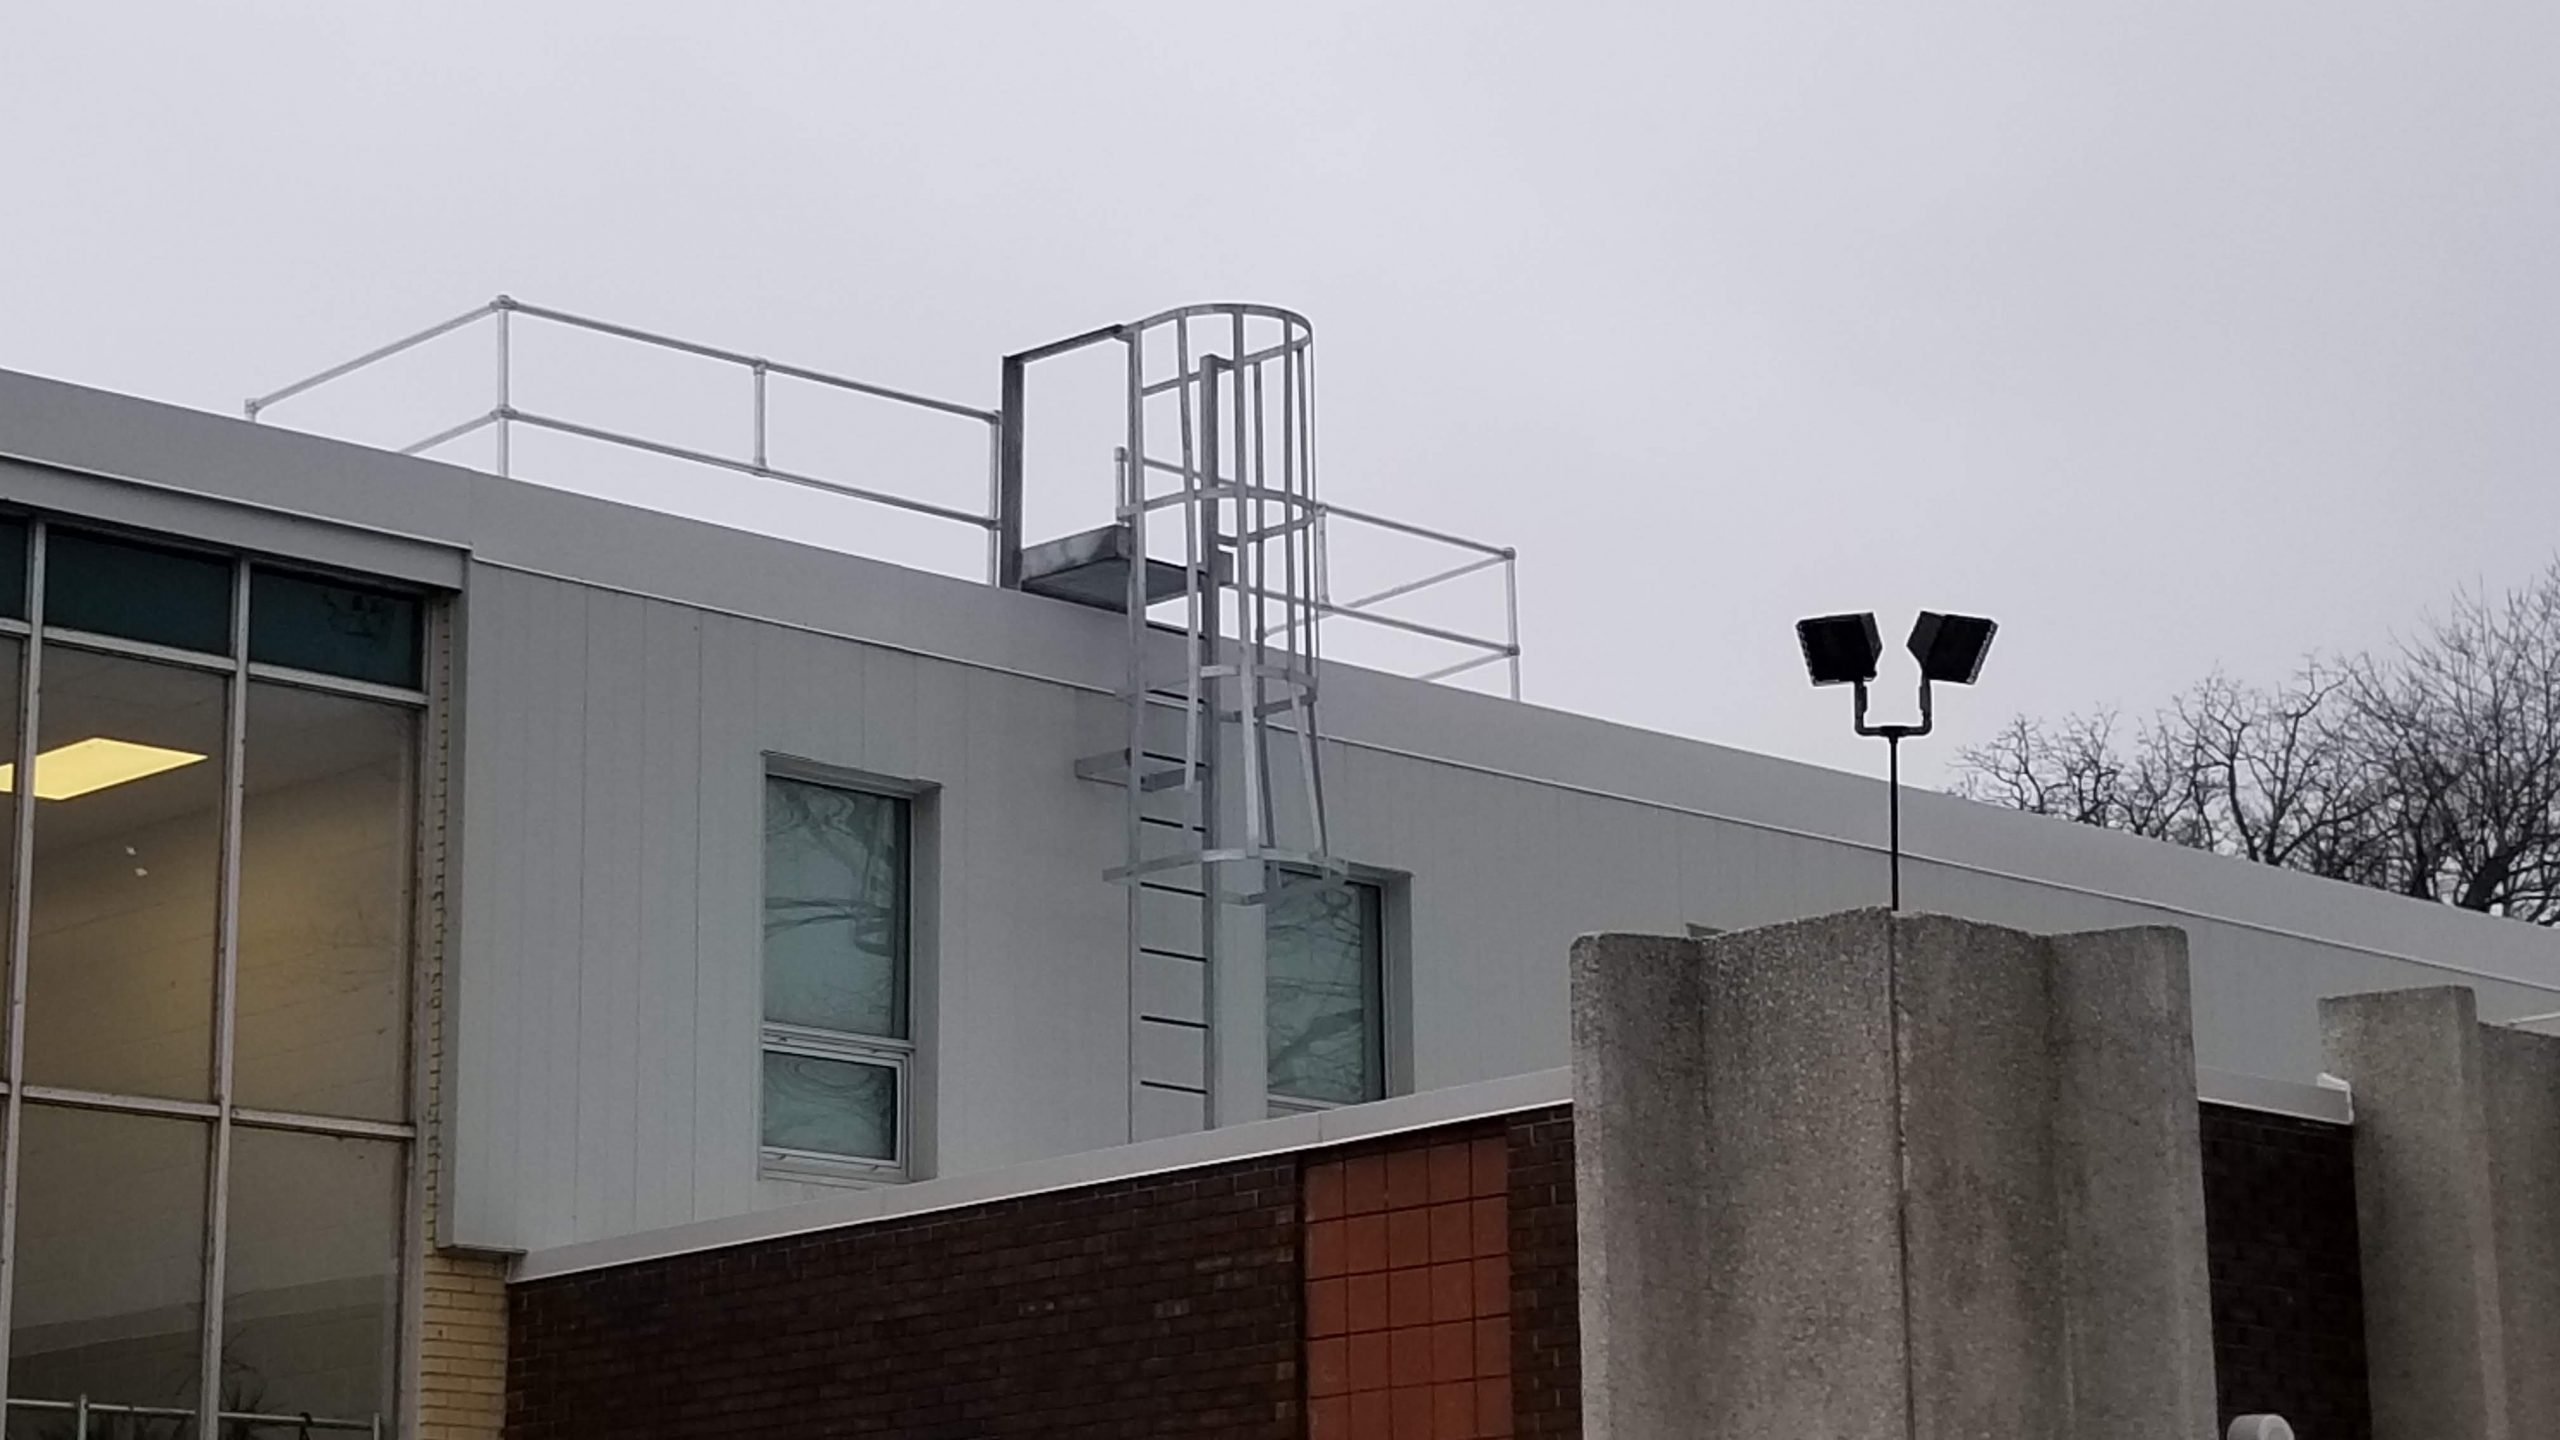 roofguard roof top ladder access point with fall protection